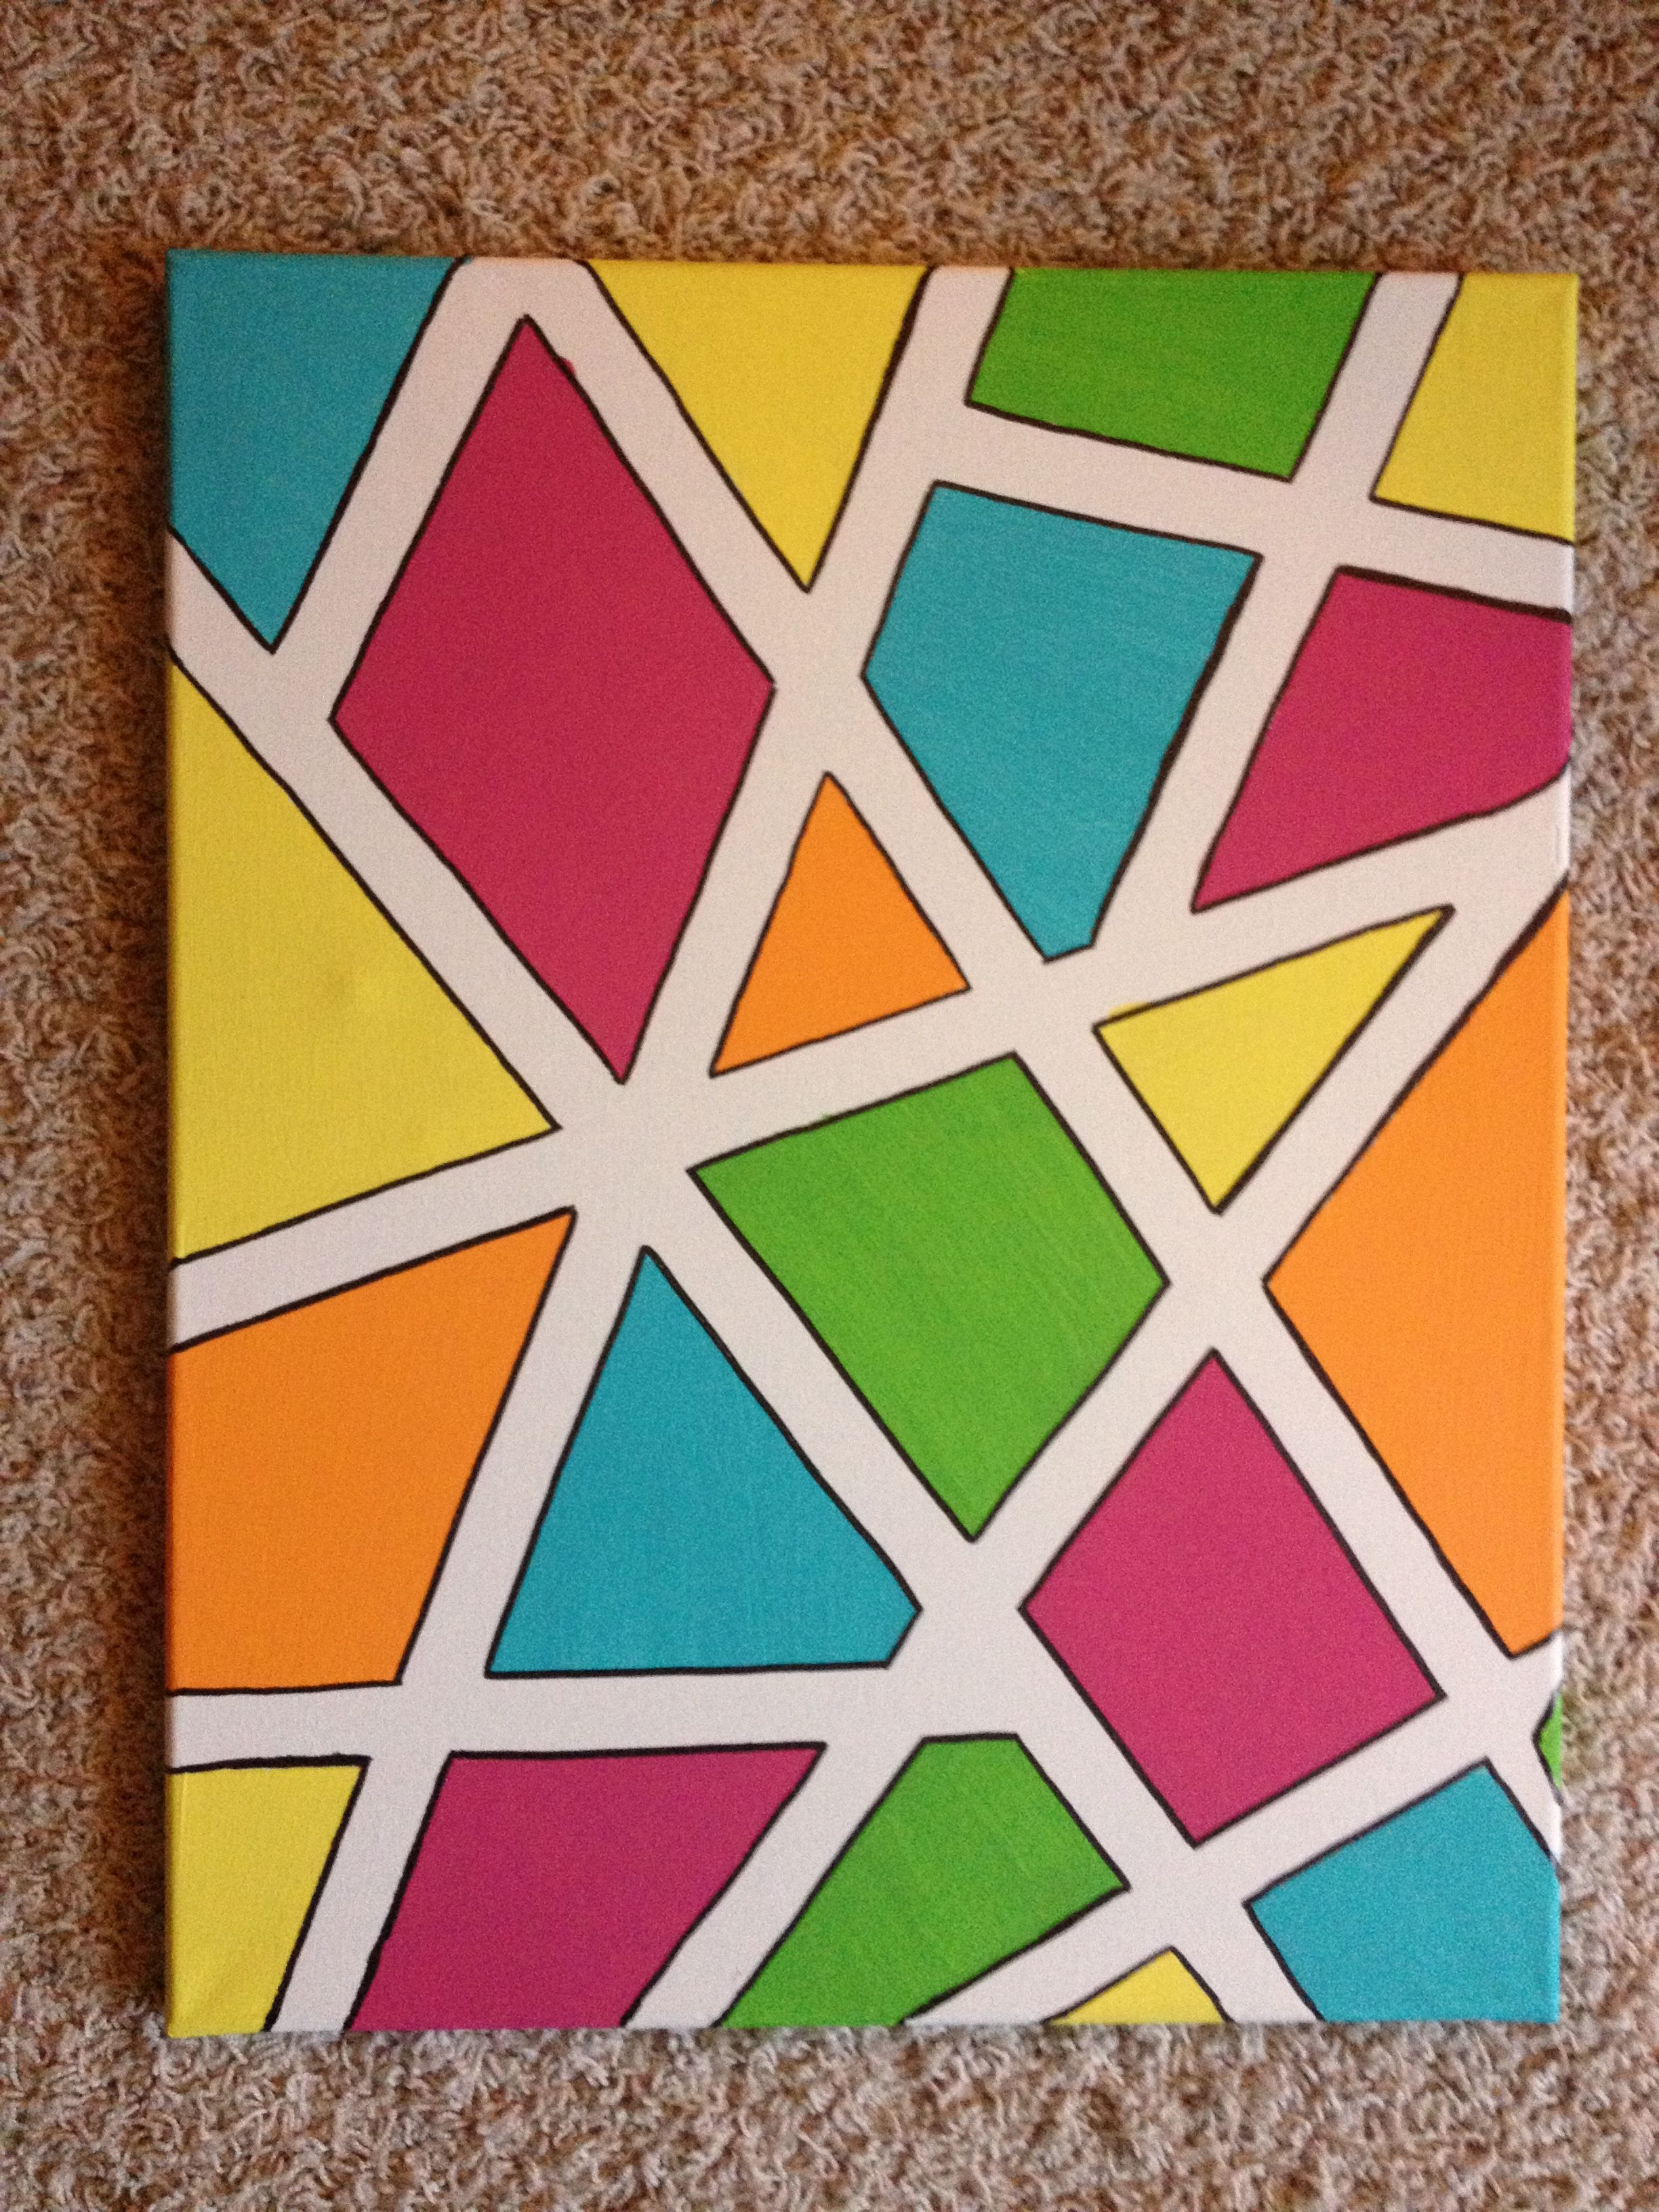 Painters Tape Paint Canvas And A Sharpie For The Outline Painters Tape Art Tape Art Masking Tape Art